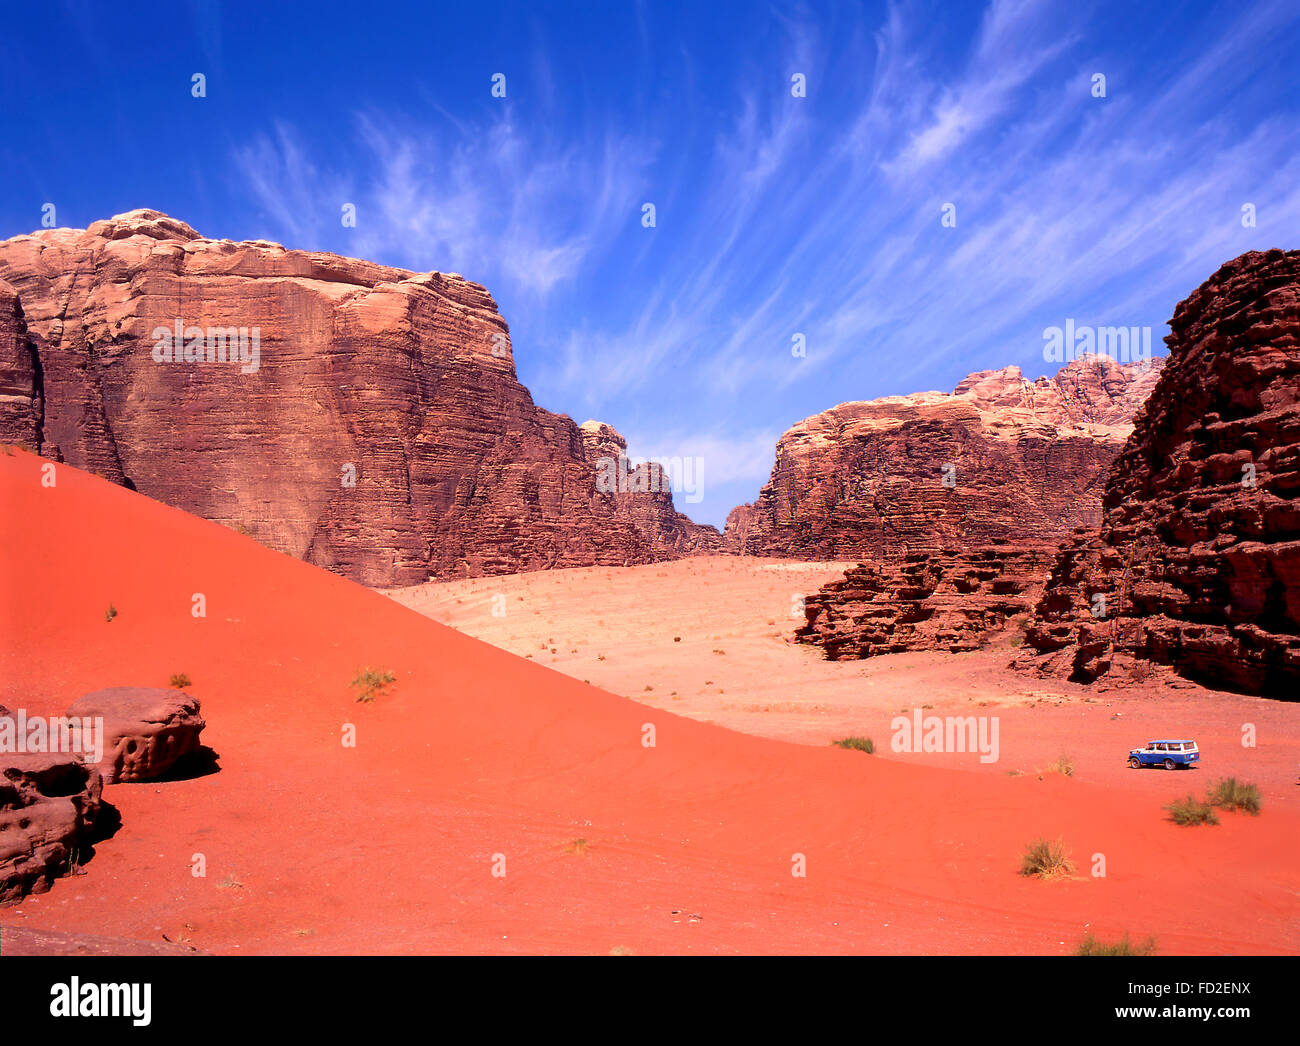 Four wheel drive in Wadi Rum, Jordan. Blue sky fades to red sand with tourists in 4wd on a tour in this desert. - Stock Image